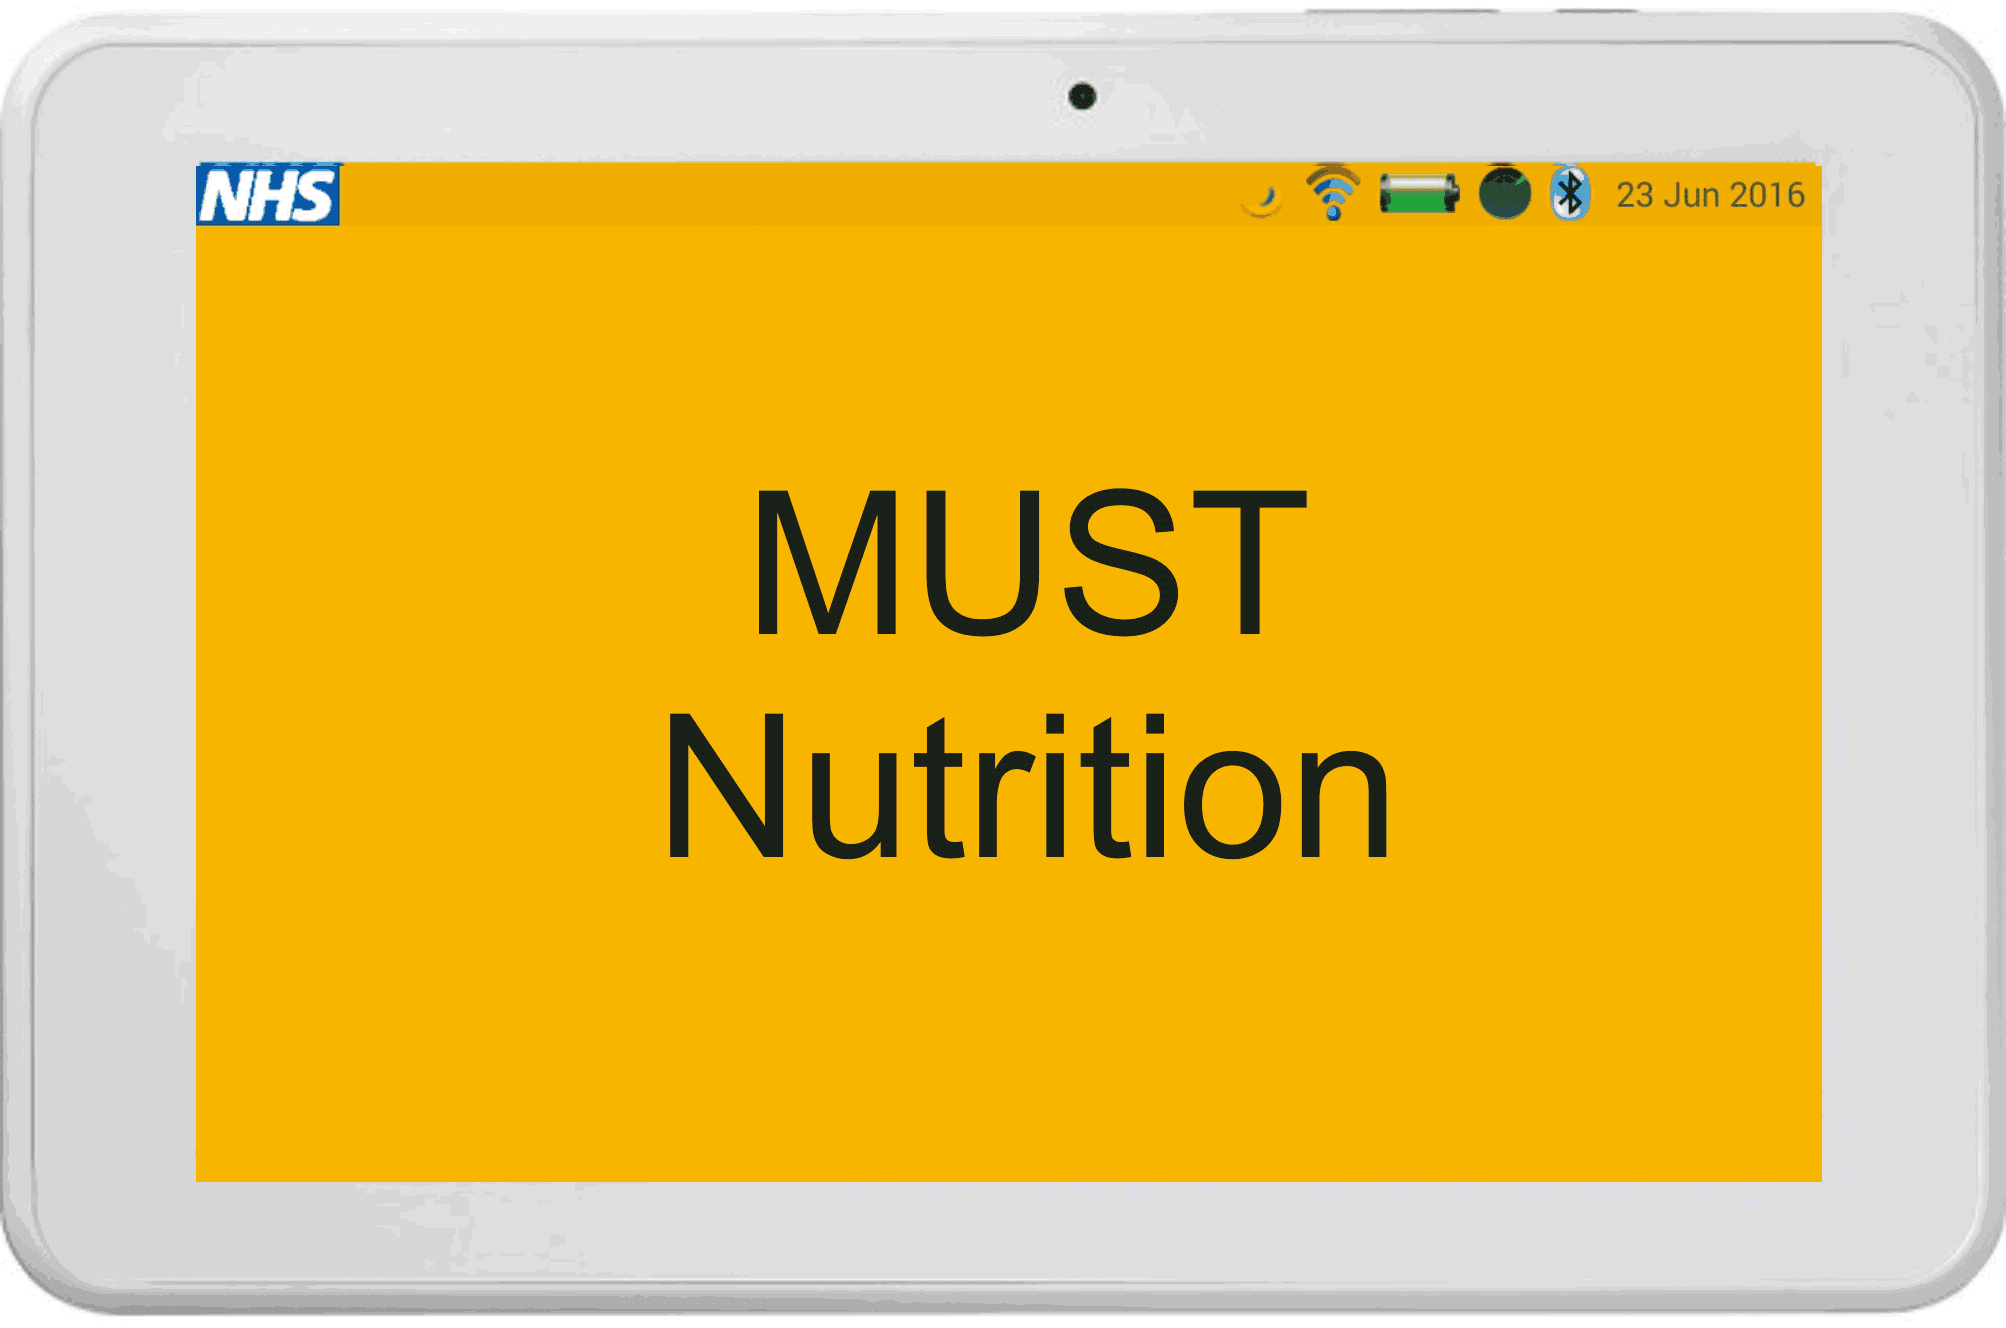 MUST Nutrition